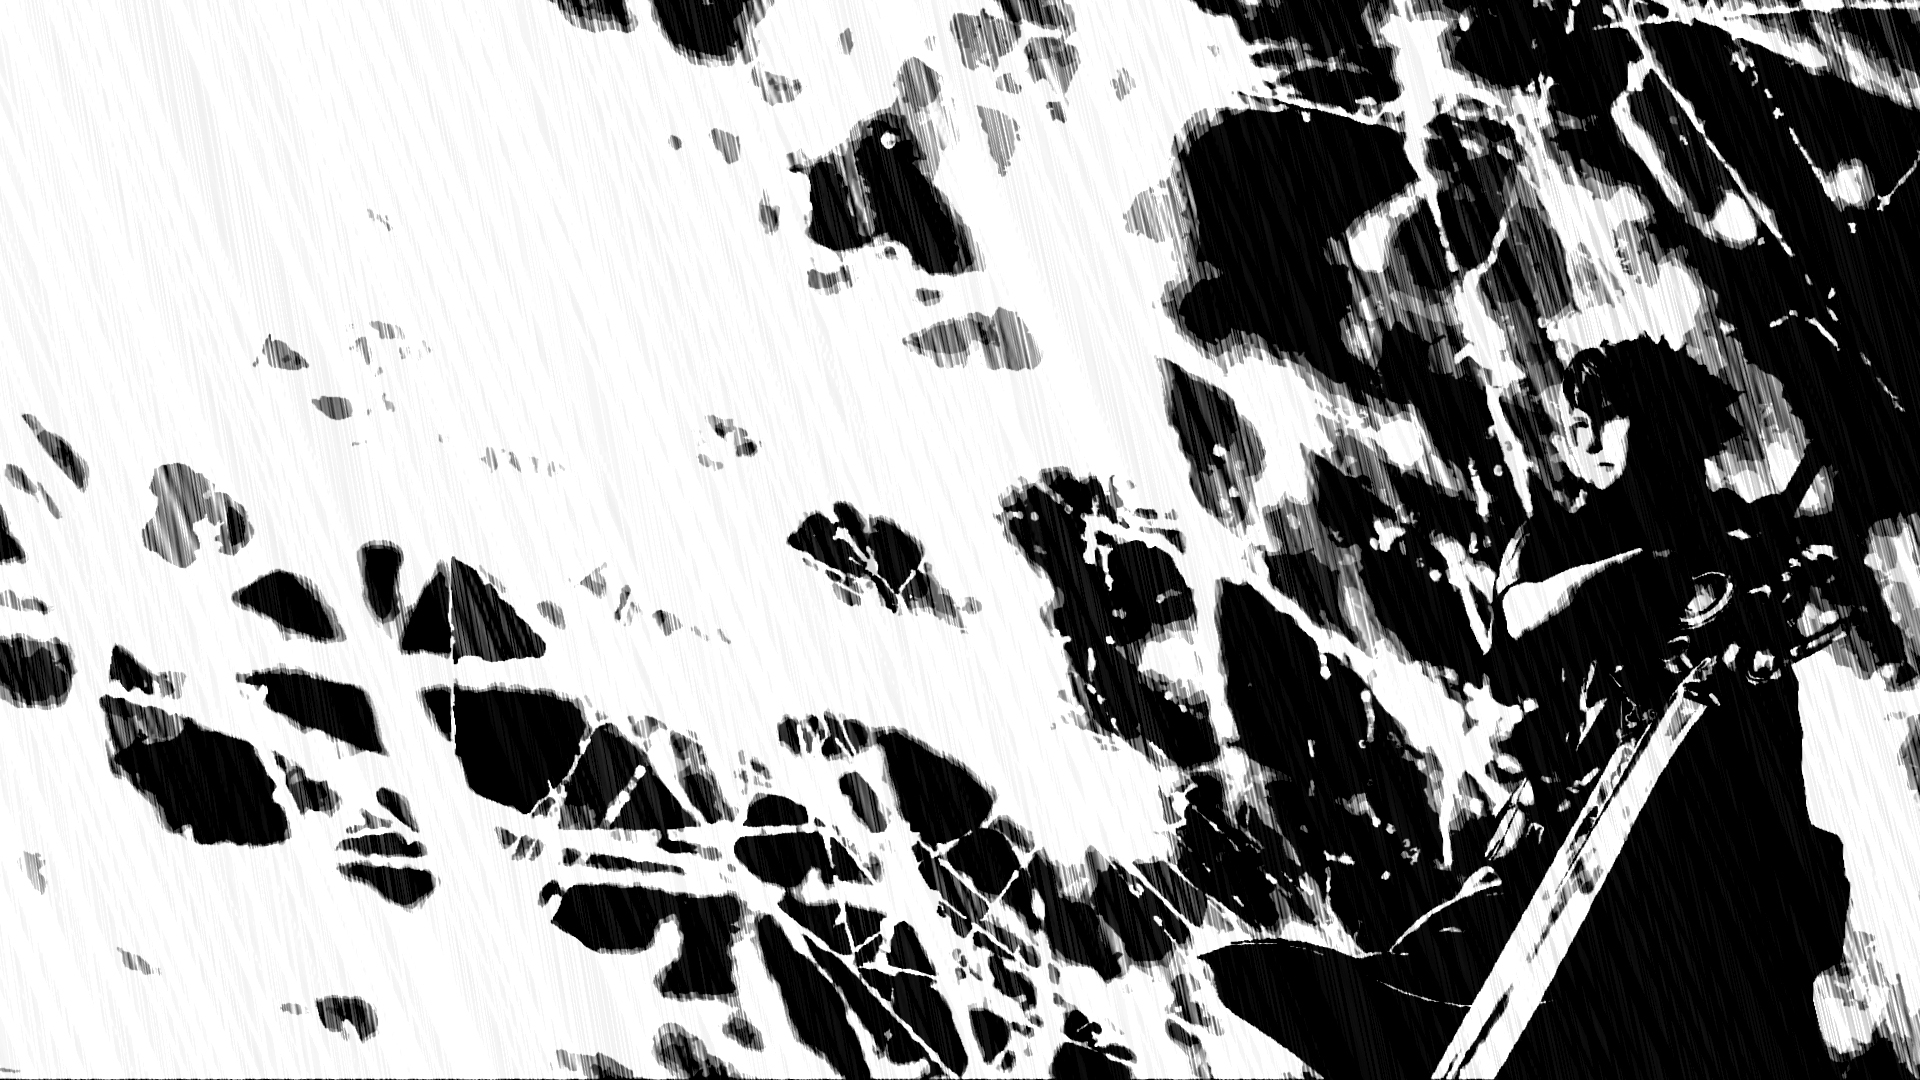 Black And White Backgrounds Free Download  PixelsTalkNet